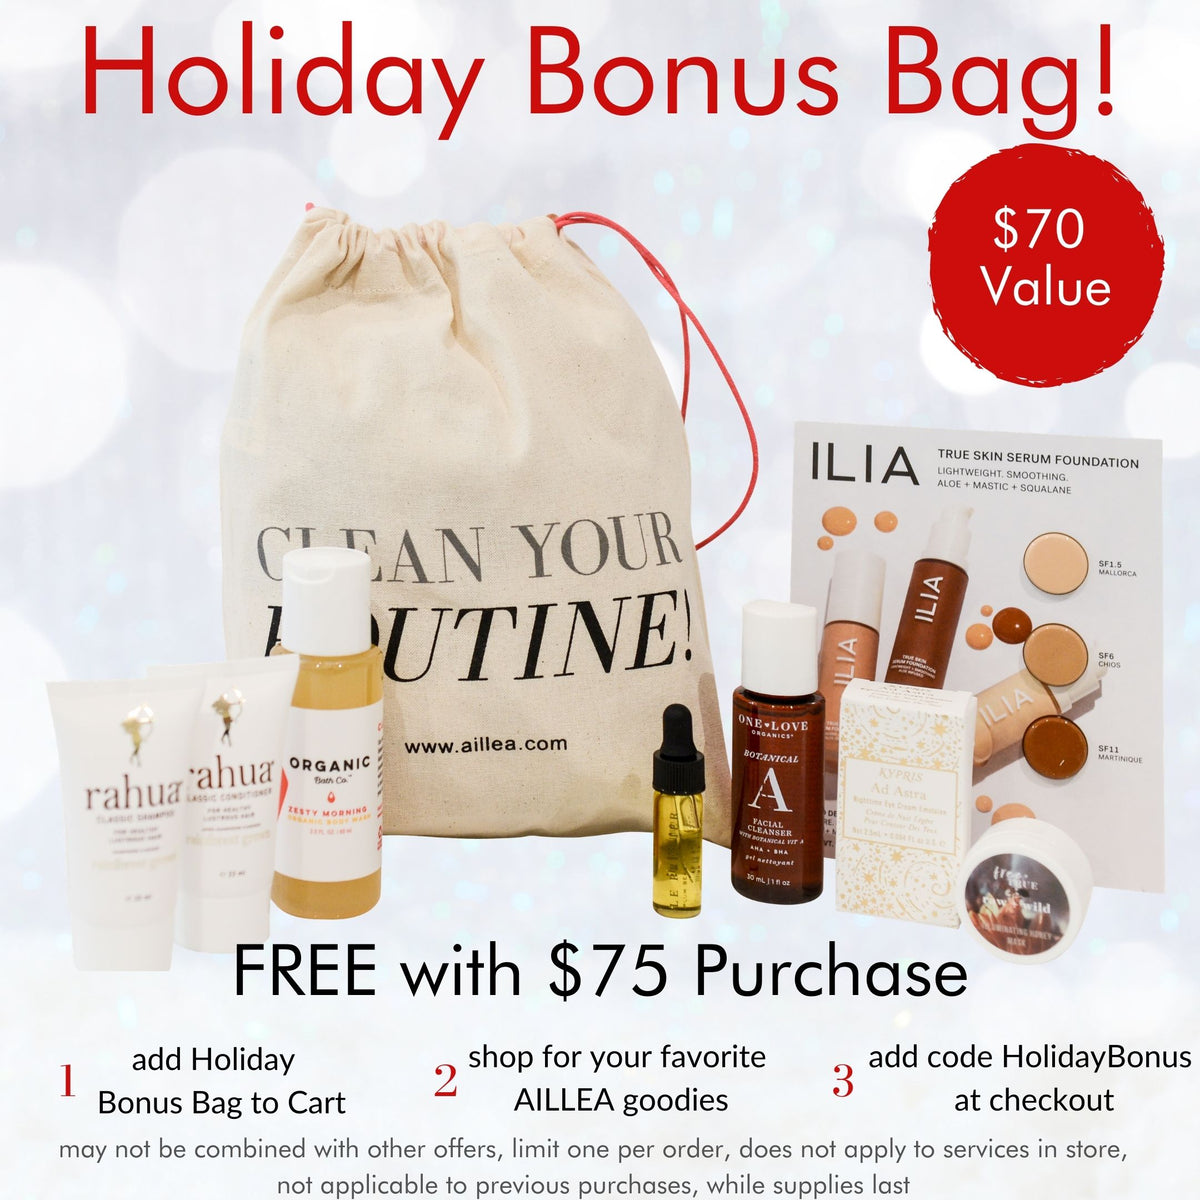 Holiday Bonus Bag